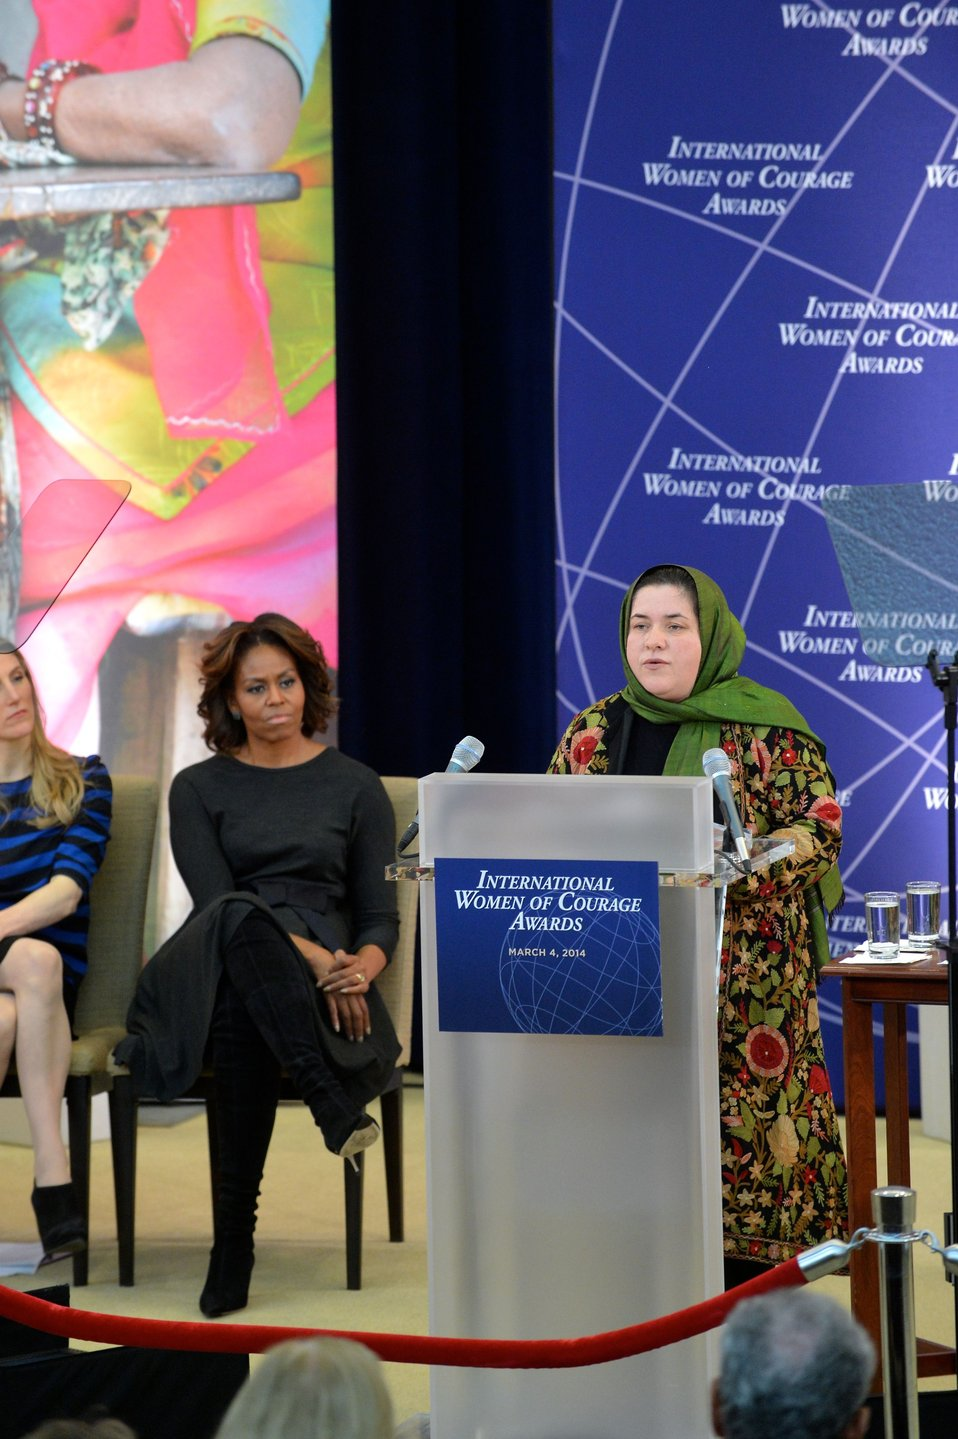 2014 IWOC Awardee Dr. Oryakhil of Afghanistan Delivers Remarks